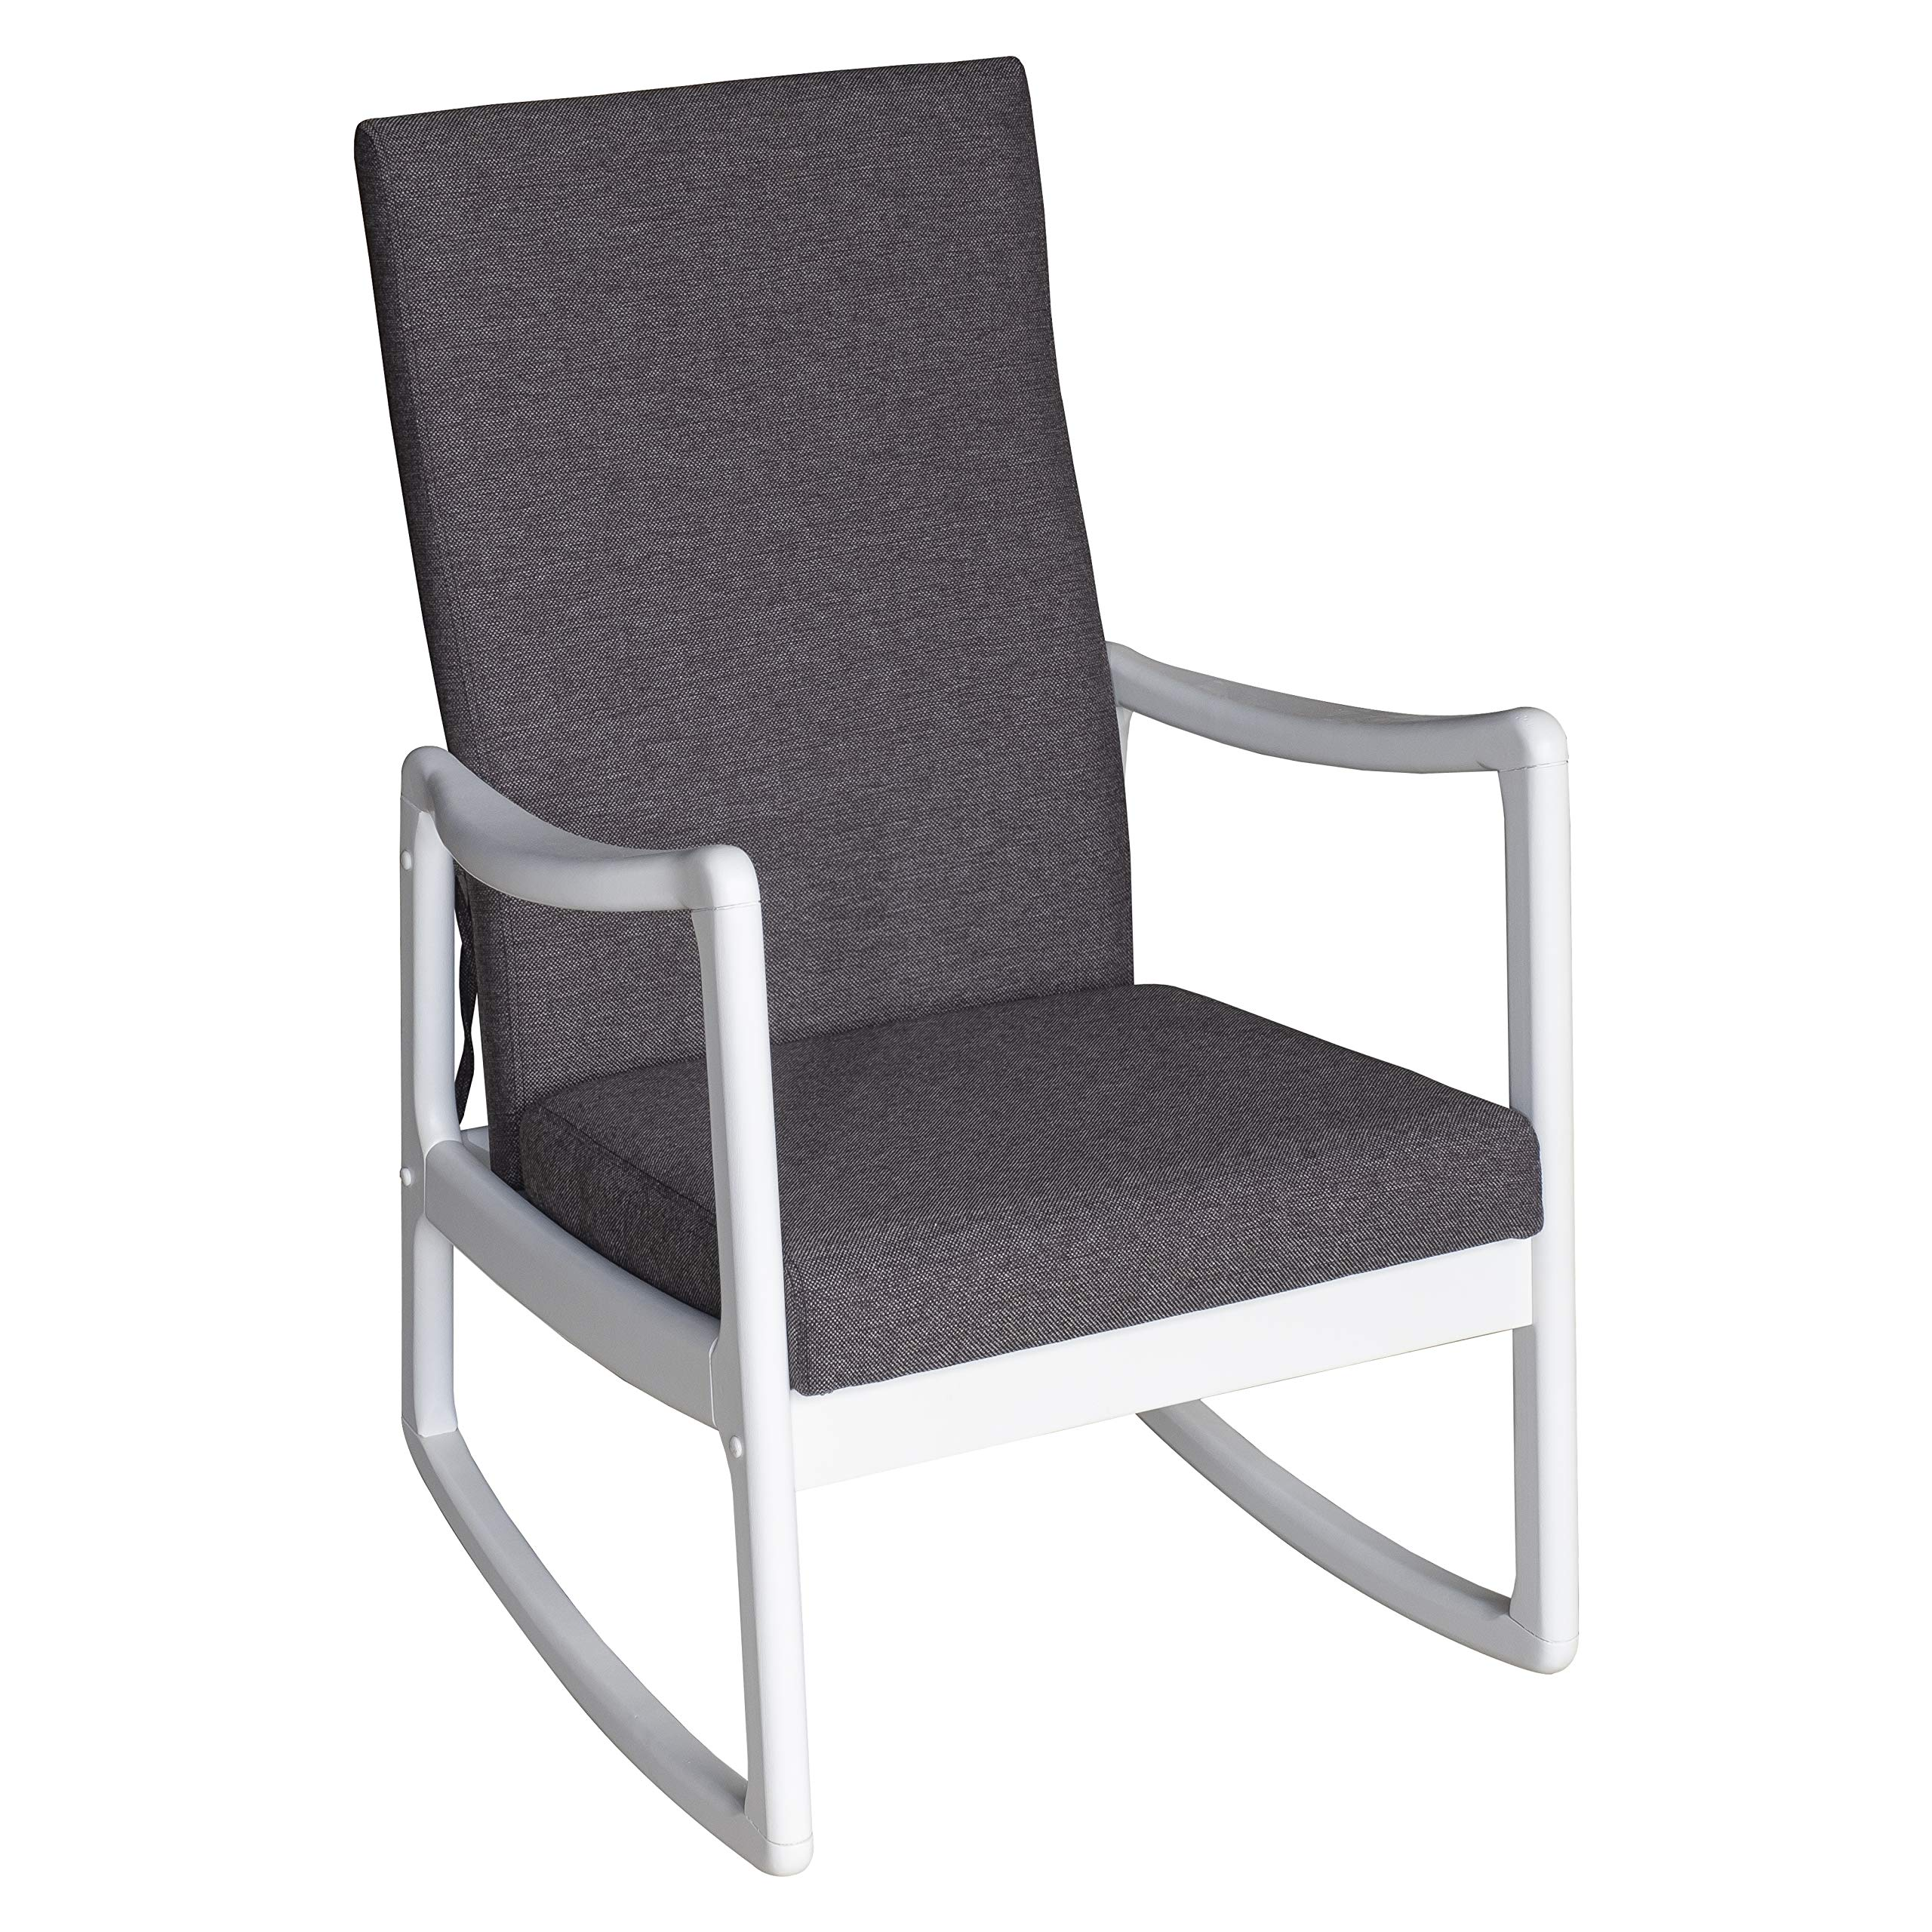 HOMCOM Modern Wood Rocking Chair Indoor Porch Furniture for Living Room - White/Gray with Cushion